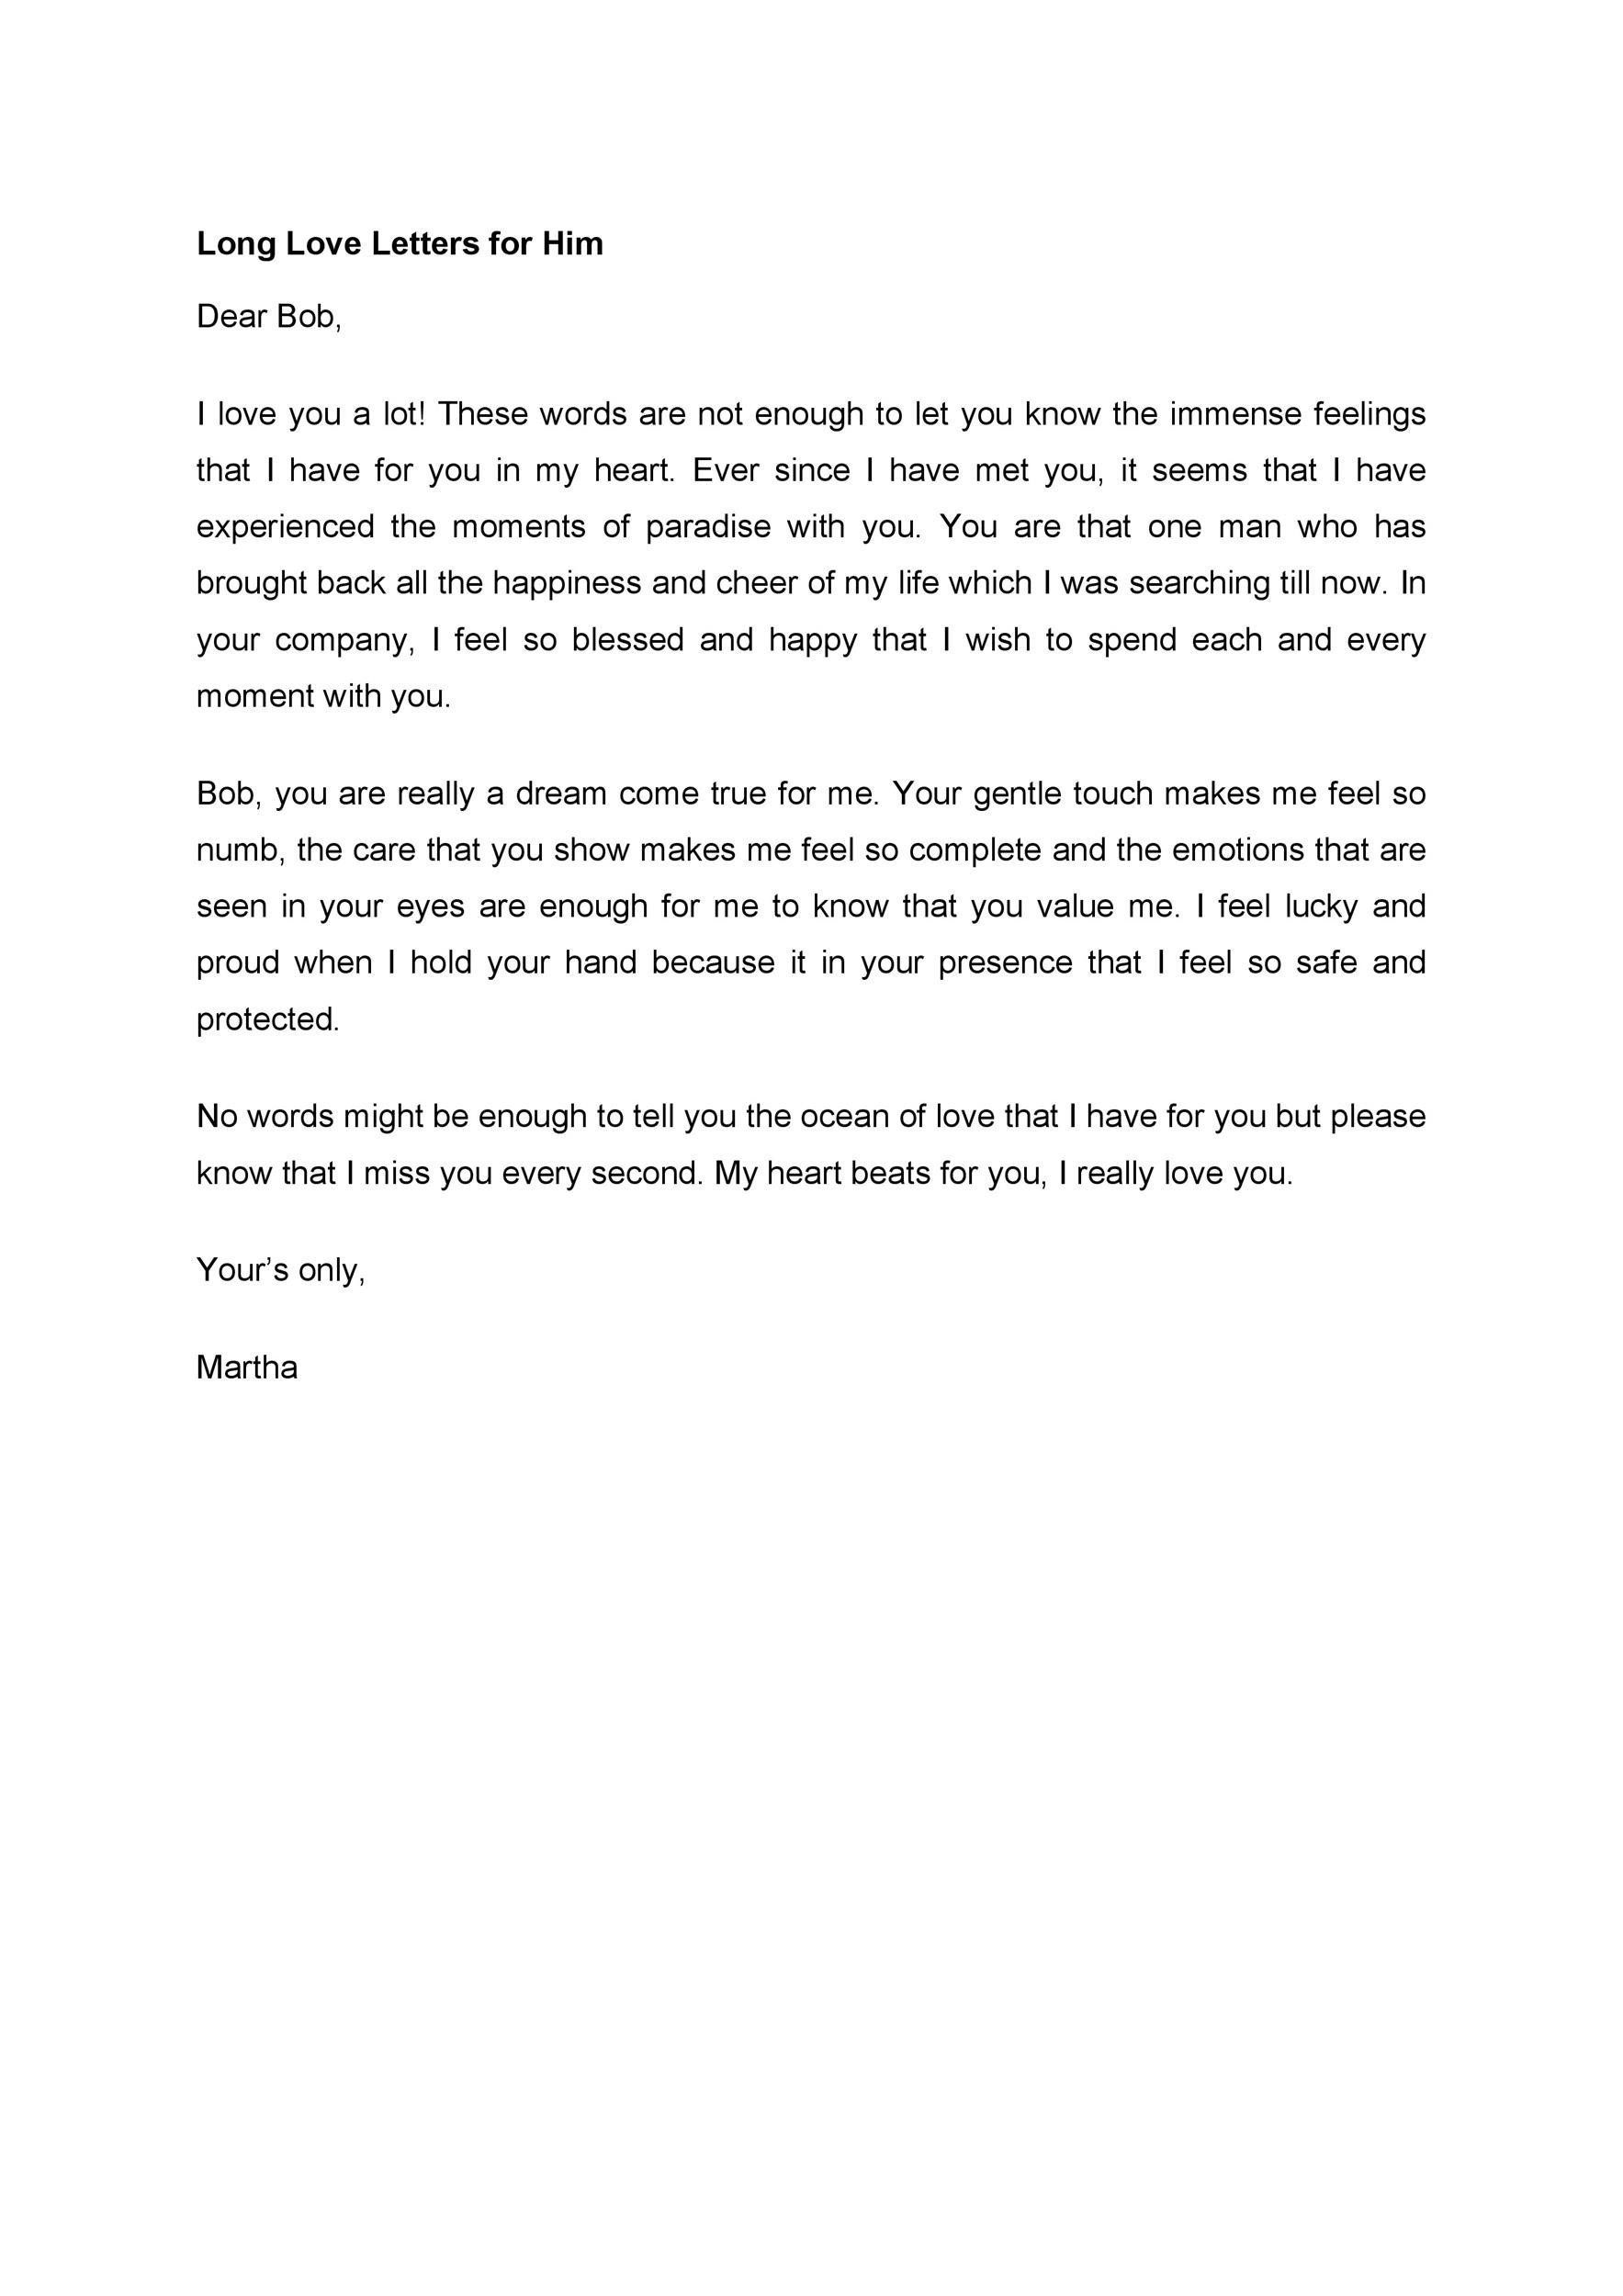 Love letter in english for him